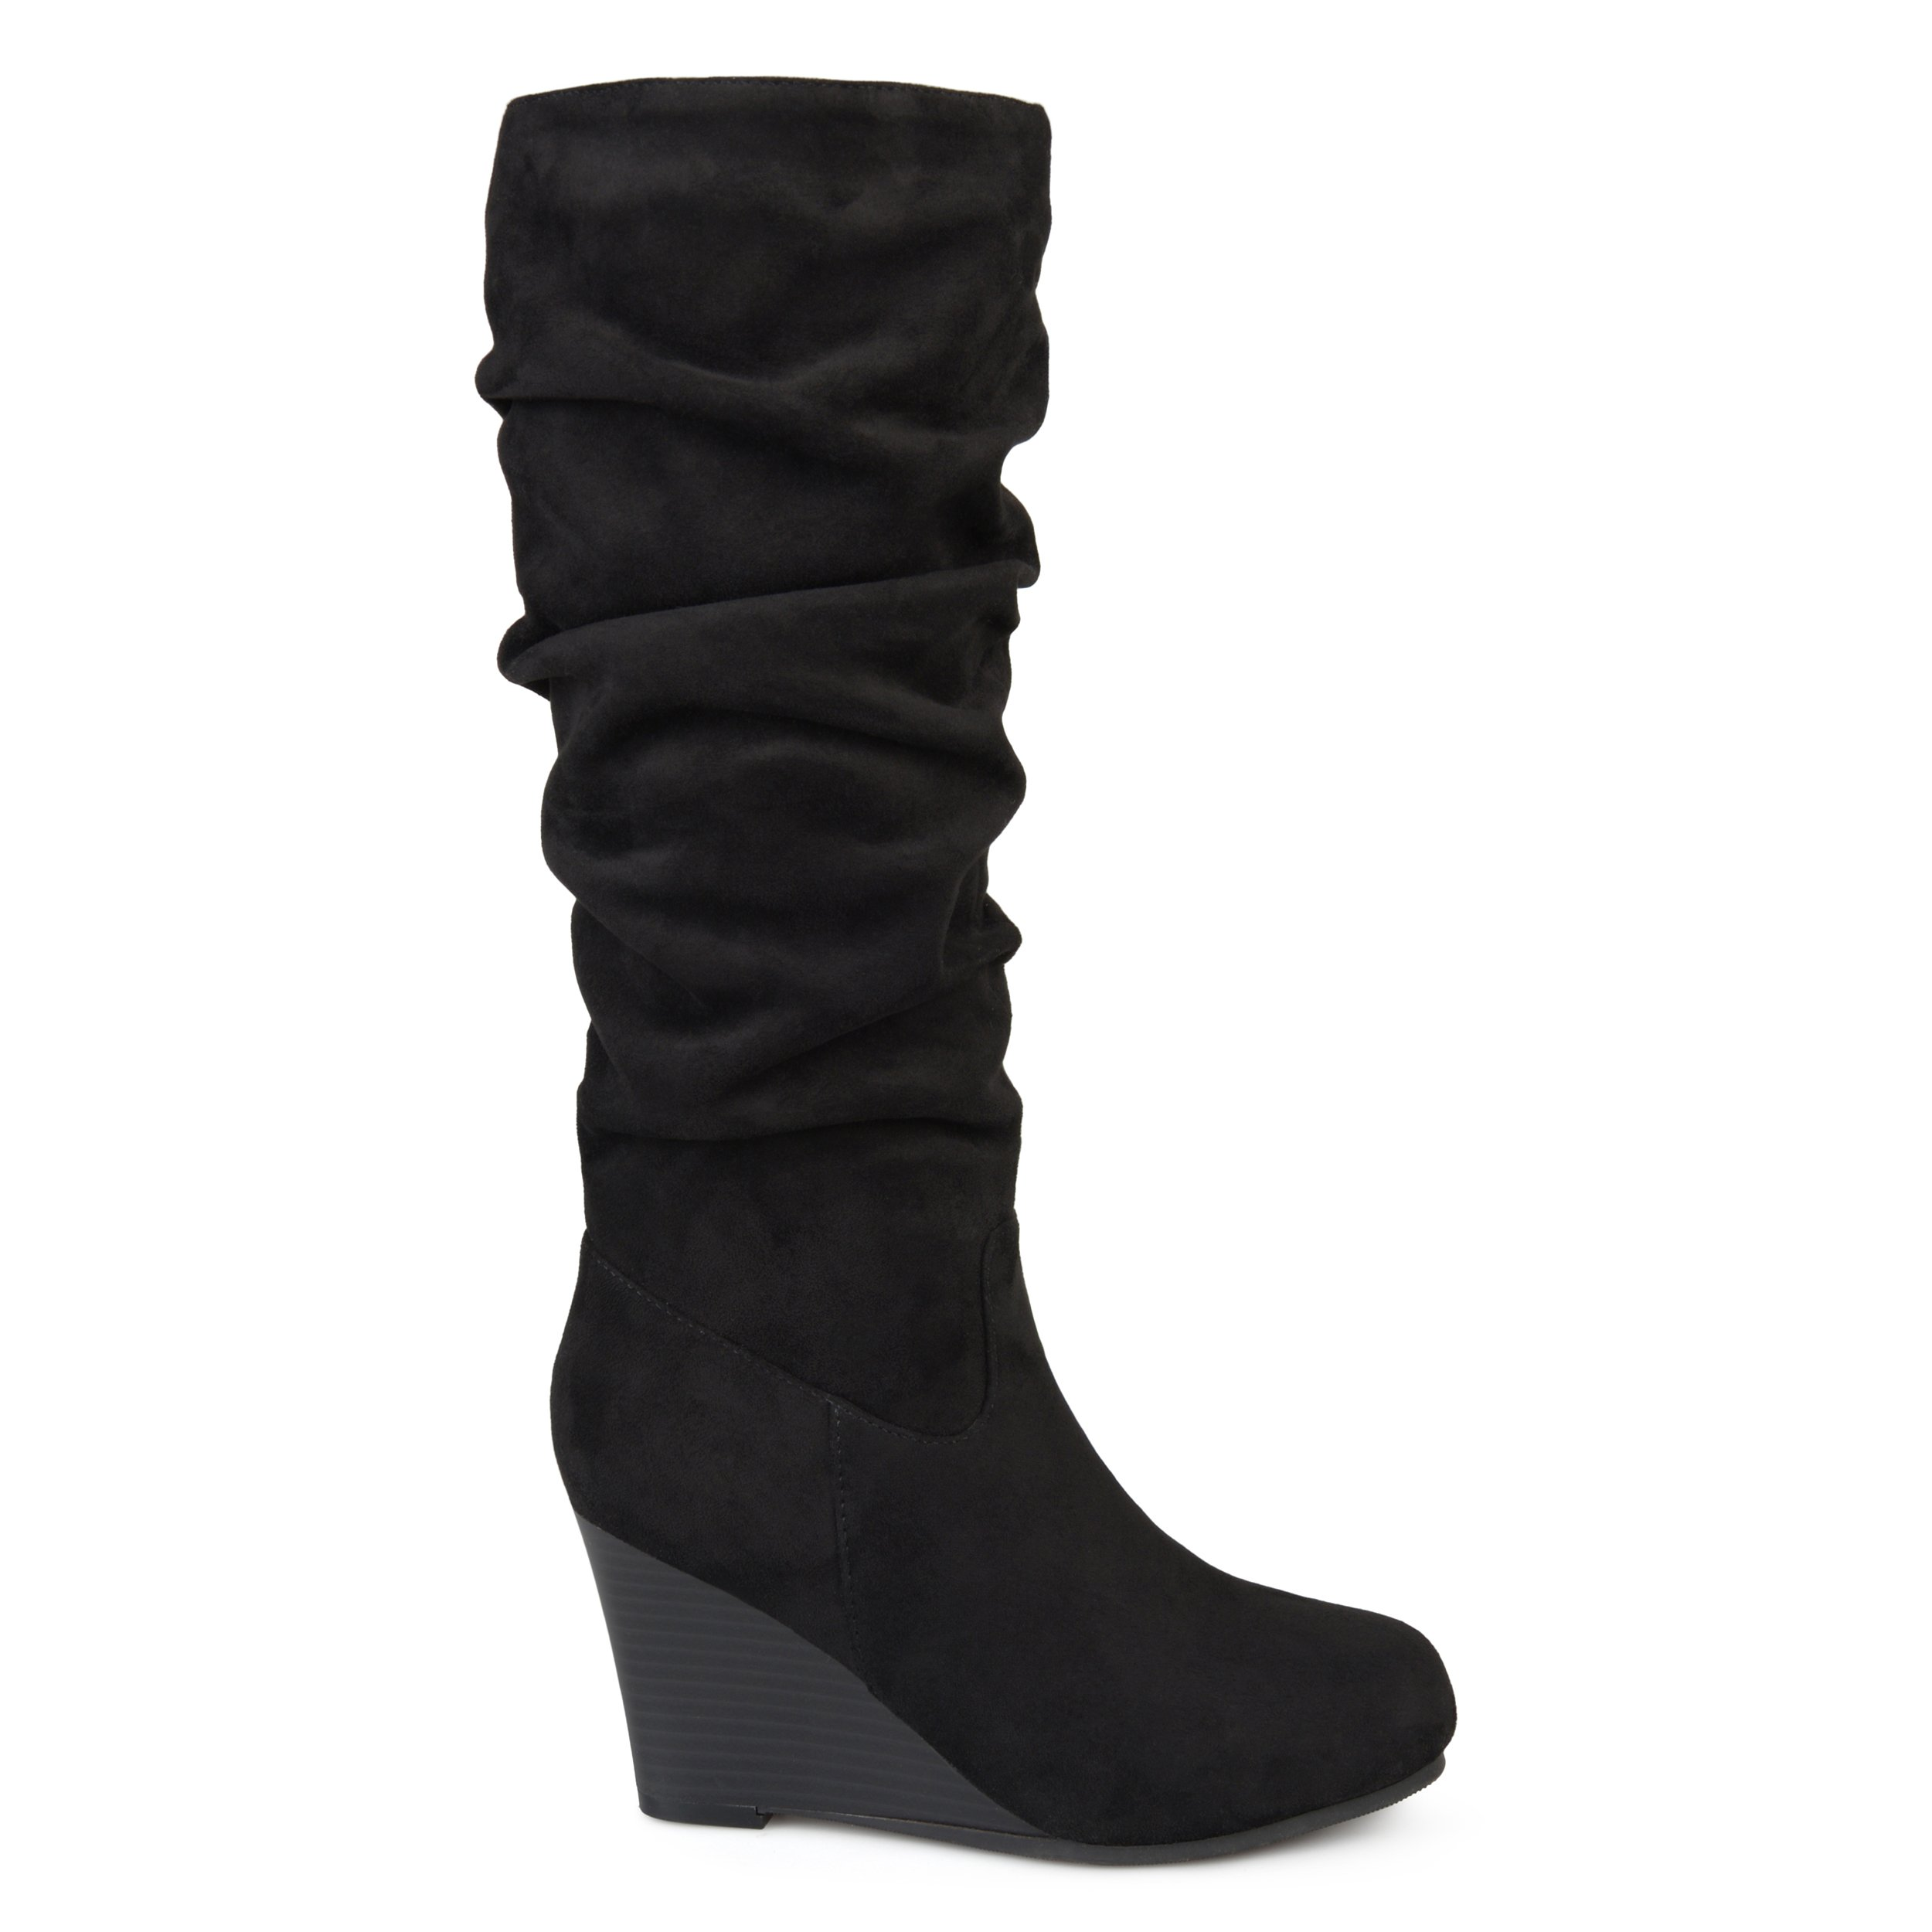 Brinley Co. Womens Regular Wide Calf Slouchy Faux Suede Mid-Calf Wedge Boots Black, 7.5 Regular US